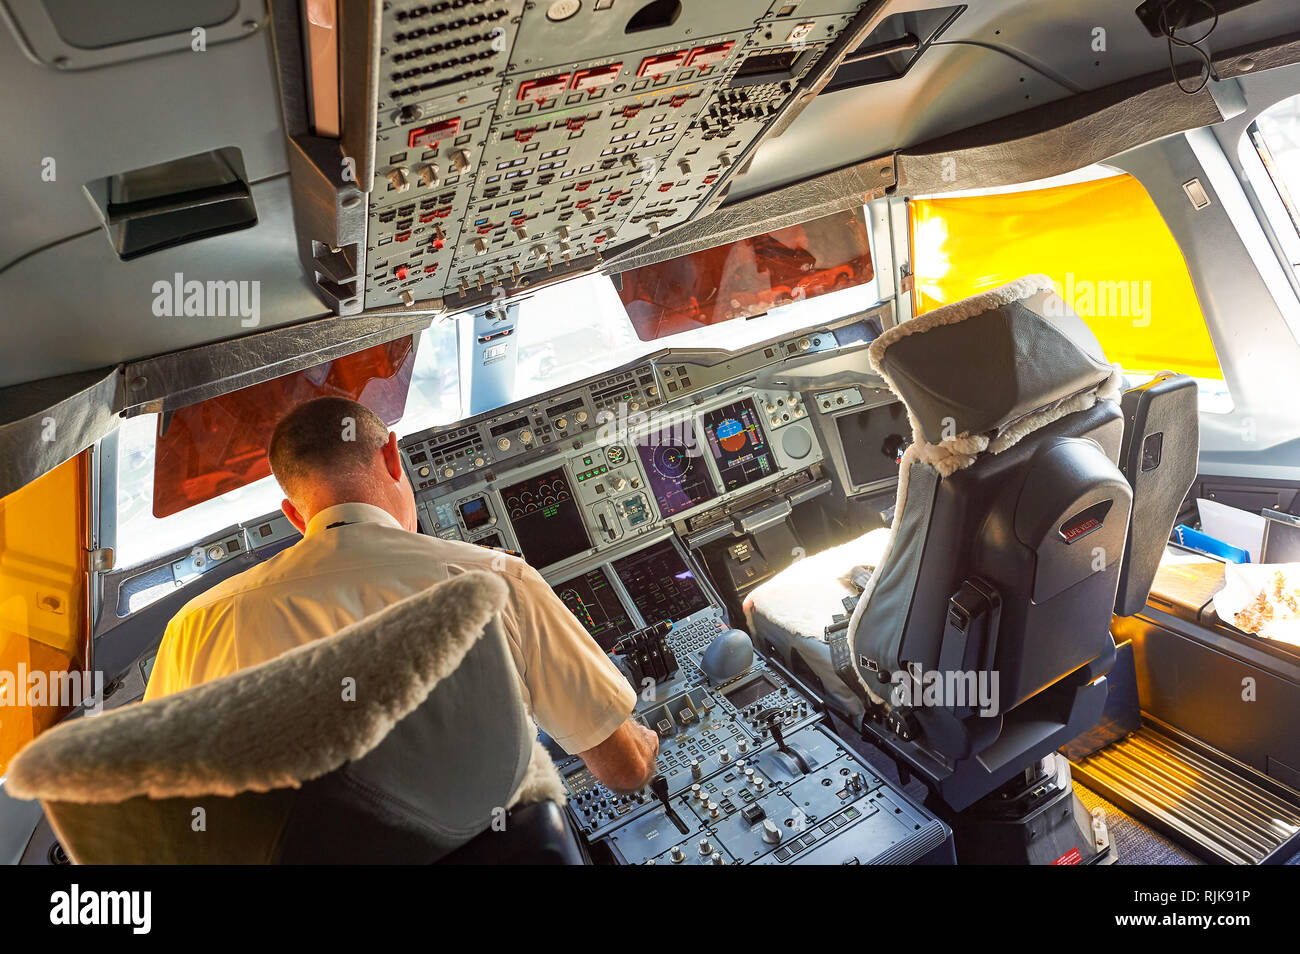 BANGKOK, THAILAND - MARCH 31, 2015: interior of Emirates Airbus A380. Emirates is one of two flag carriers of the United Arab Emirates along with Etih - Stock Image